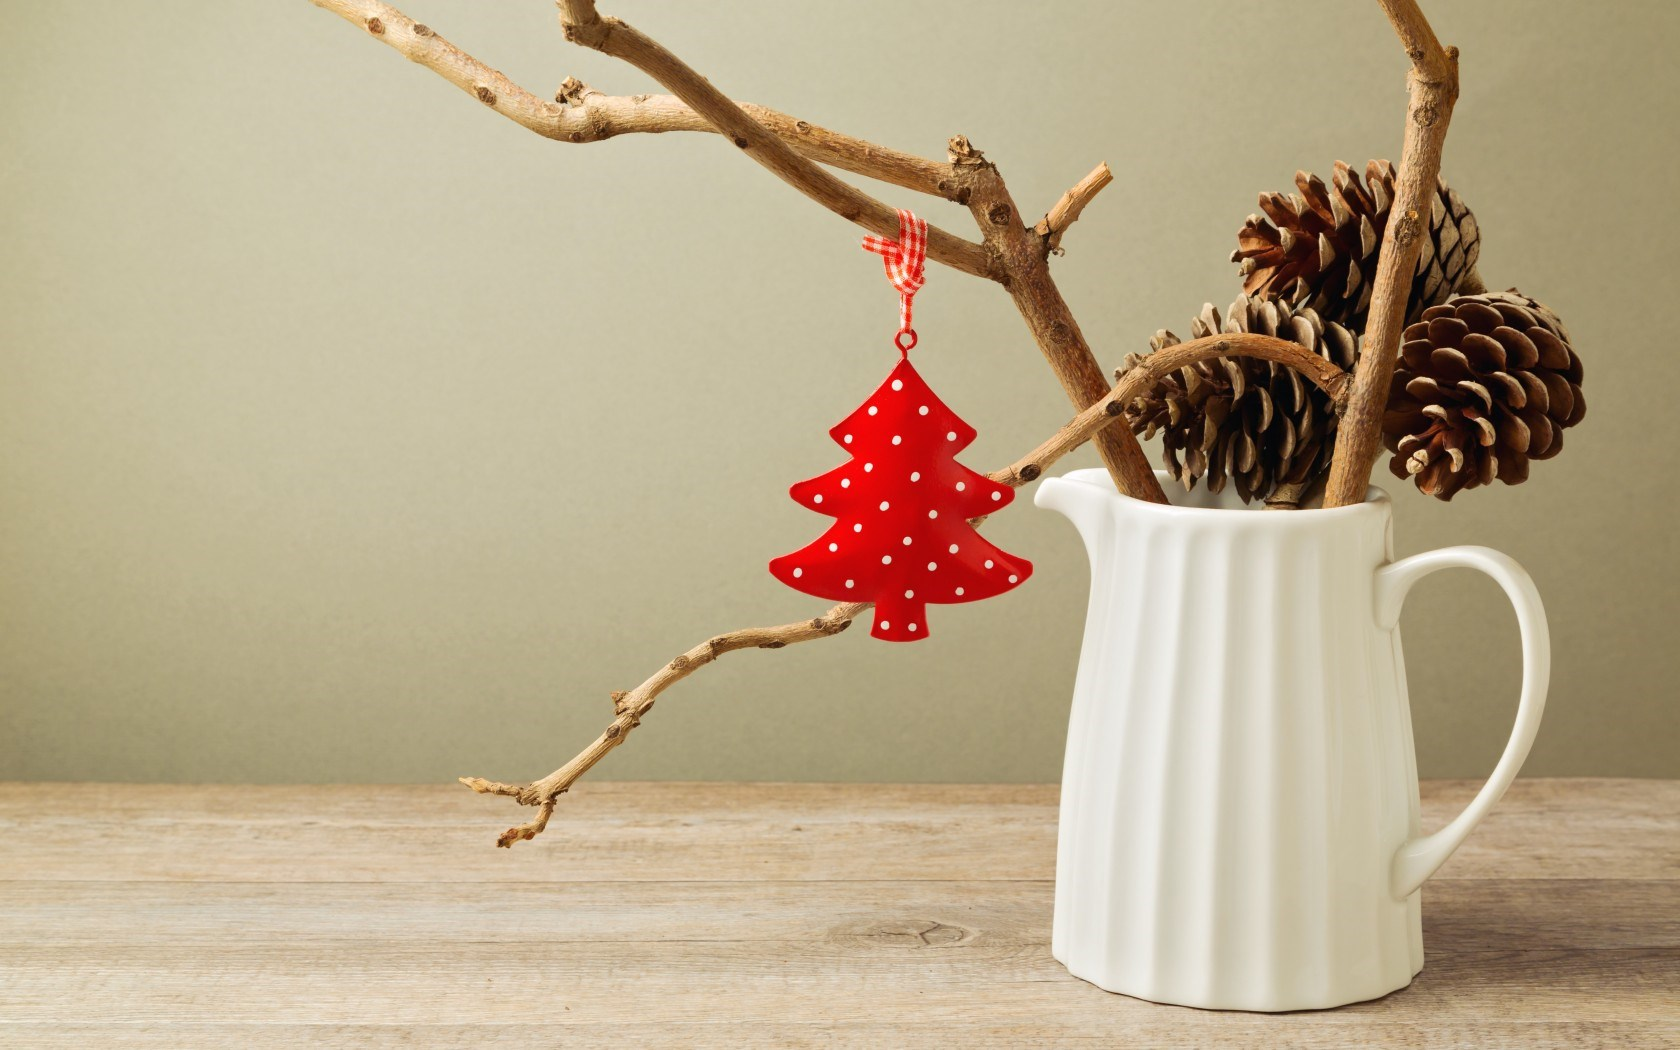 Pitcher White Pine Cones Twigs Christmas Tree Red Holiday Winter